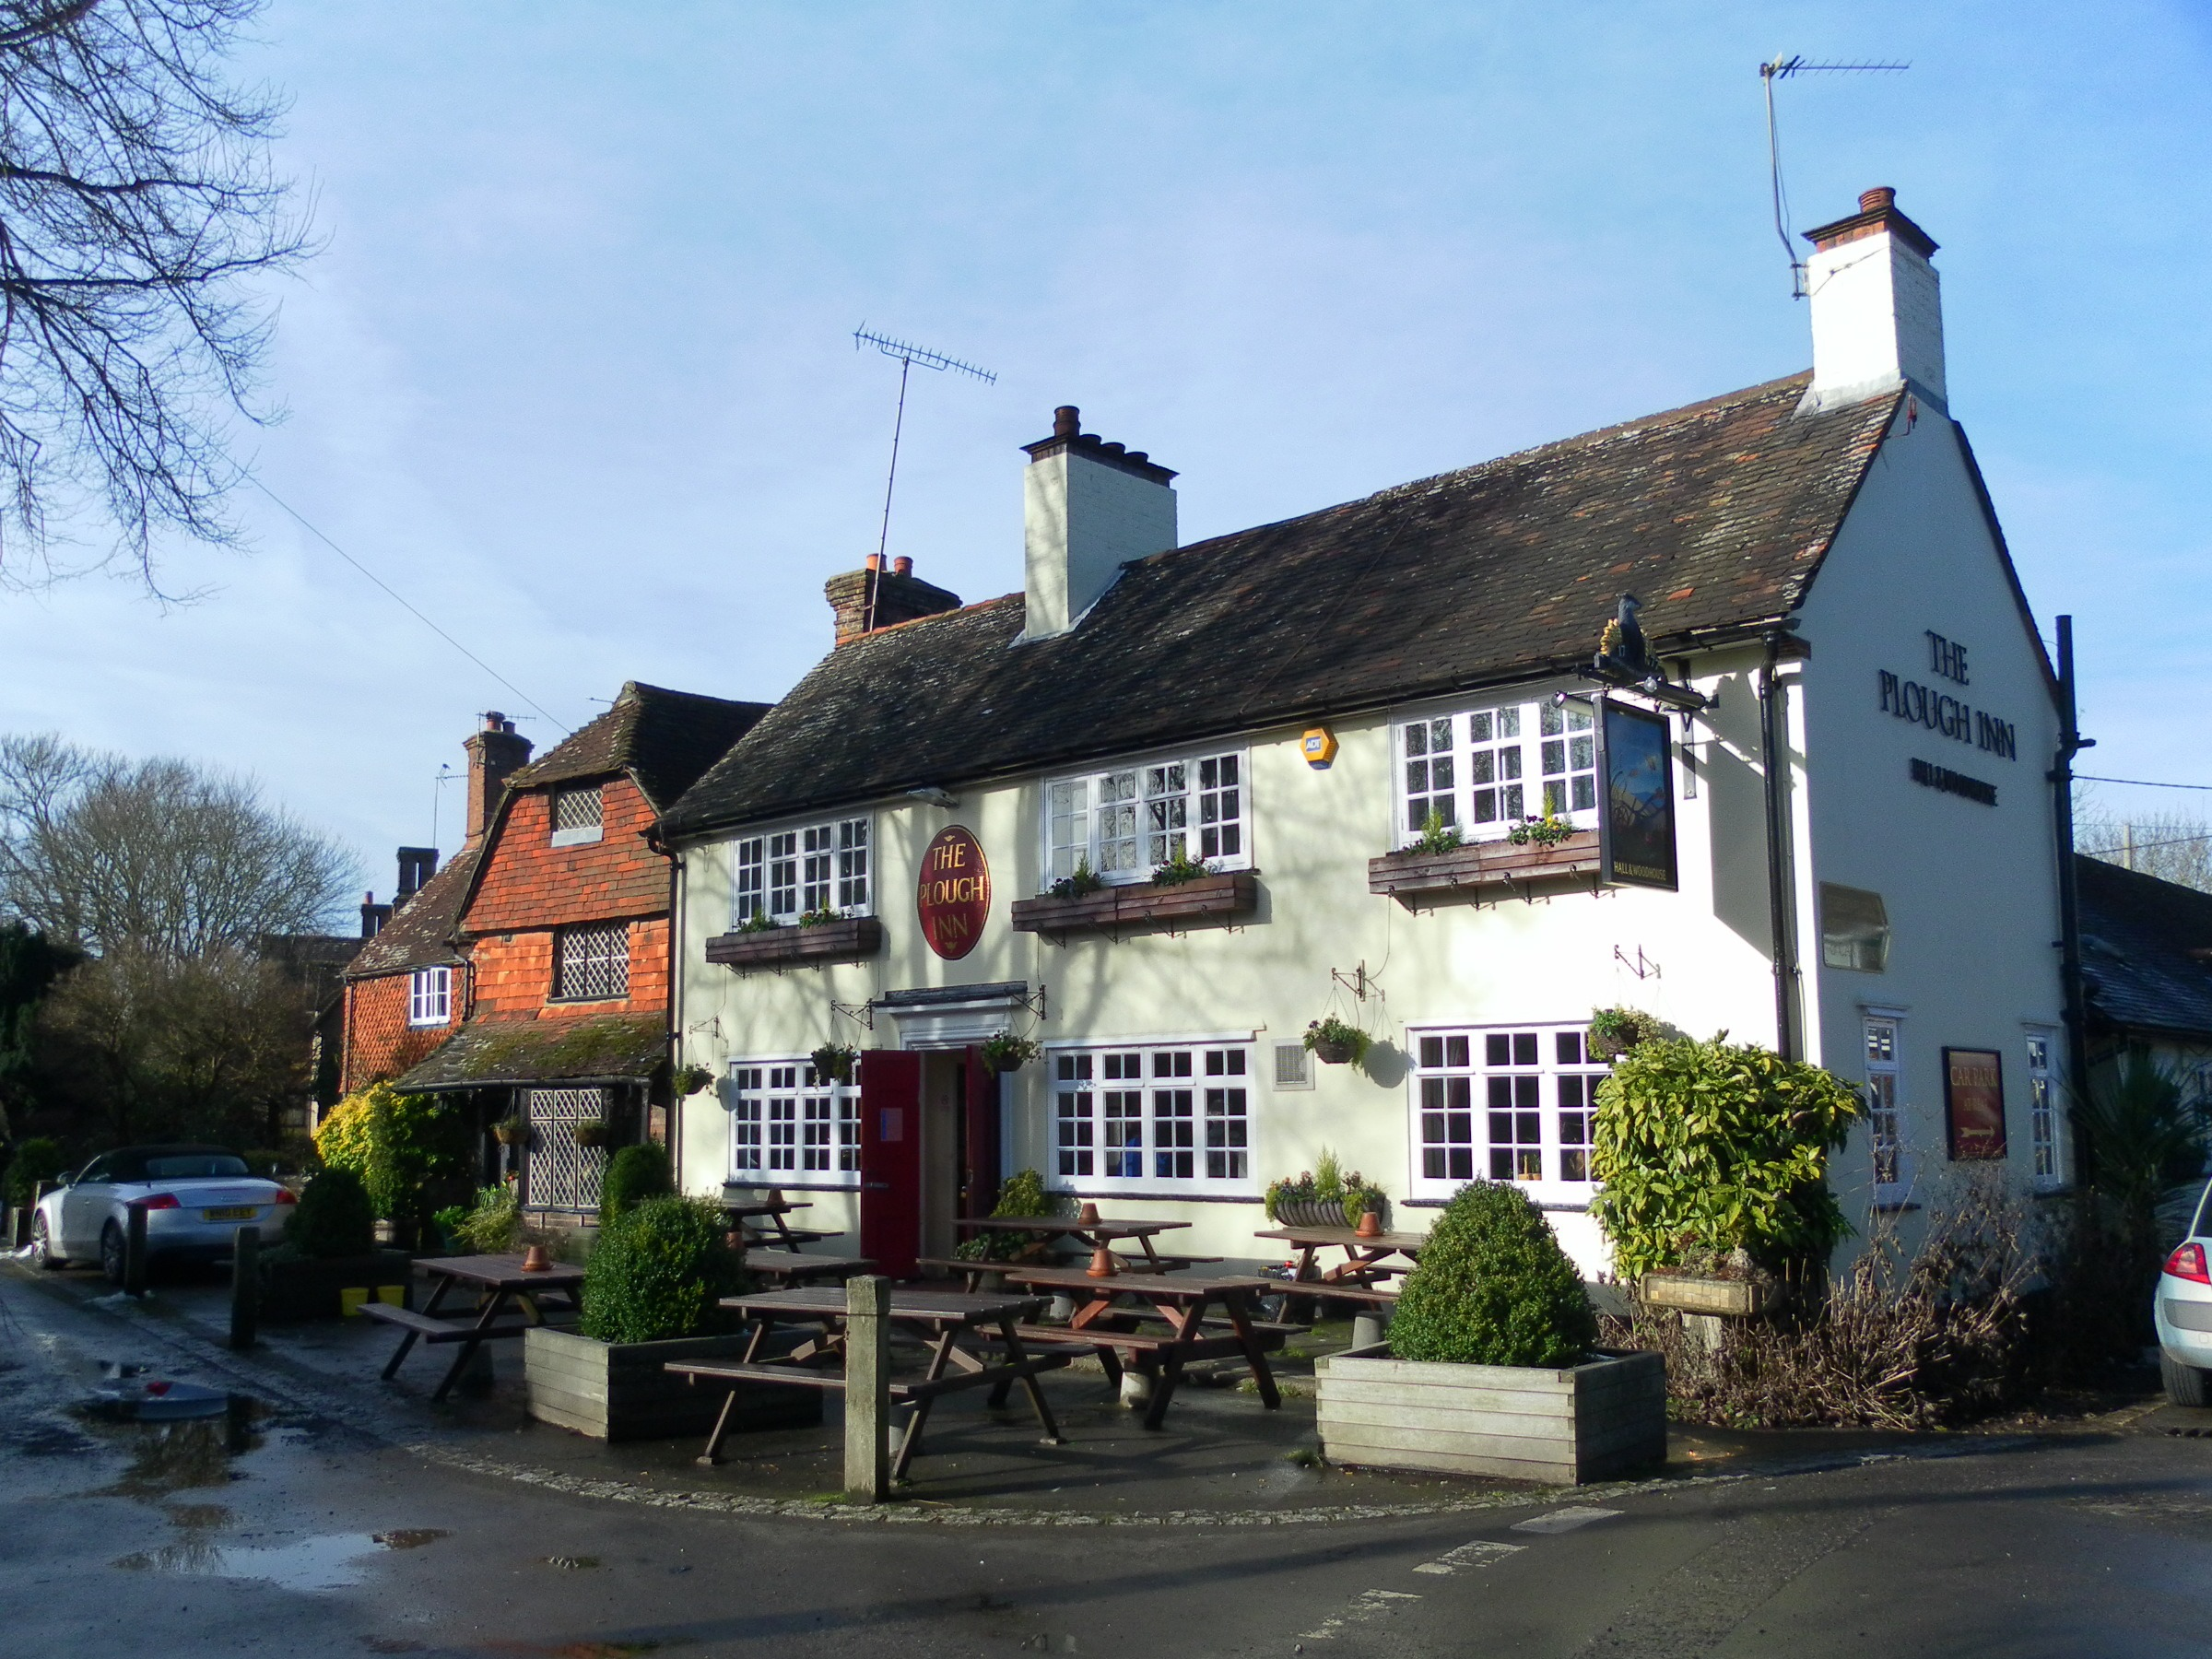 Permalink to The Plough Inn Bed And Breakfasts Near York York